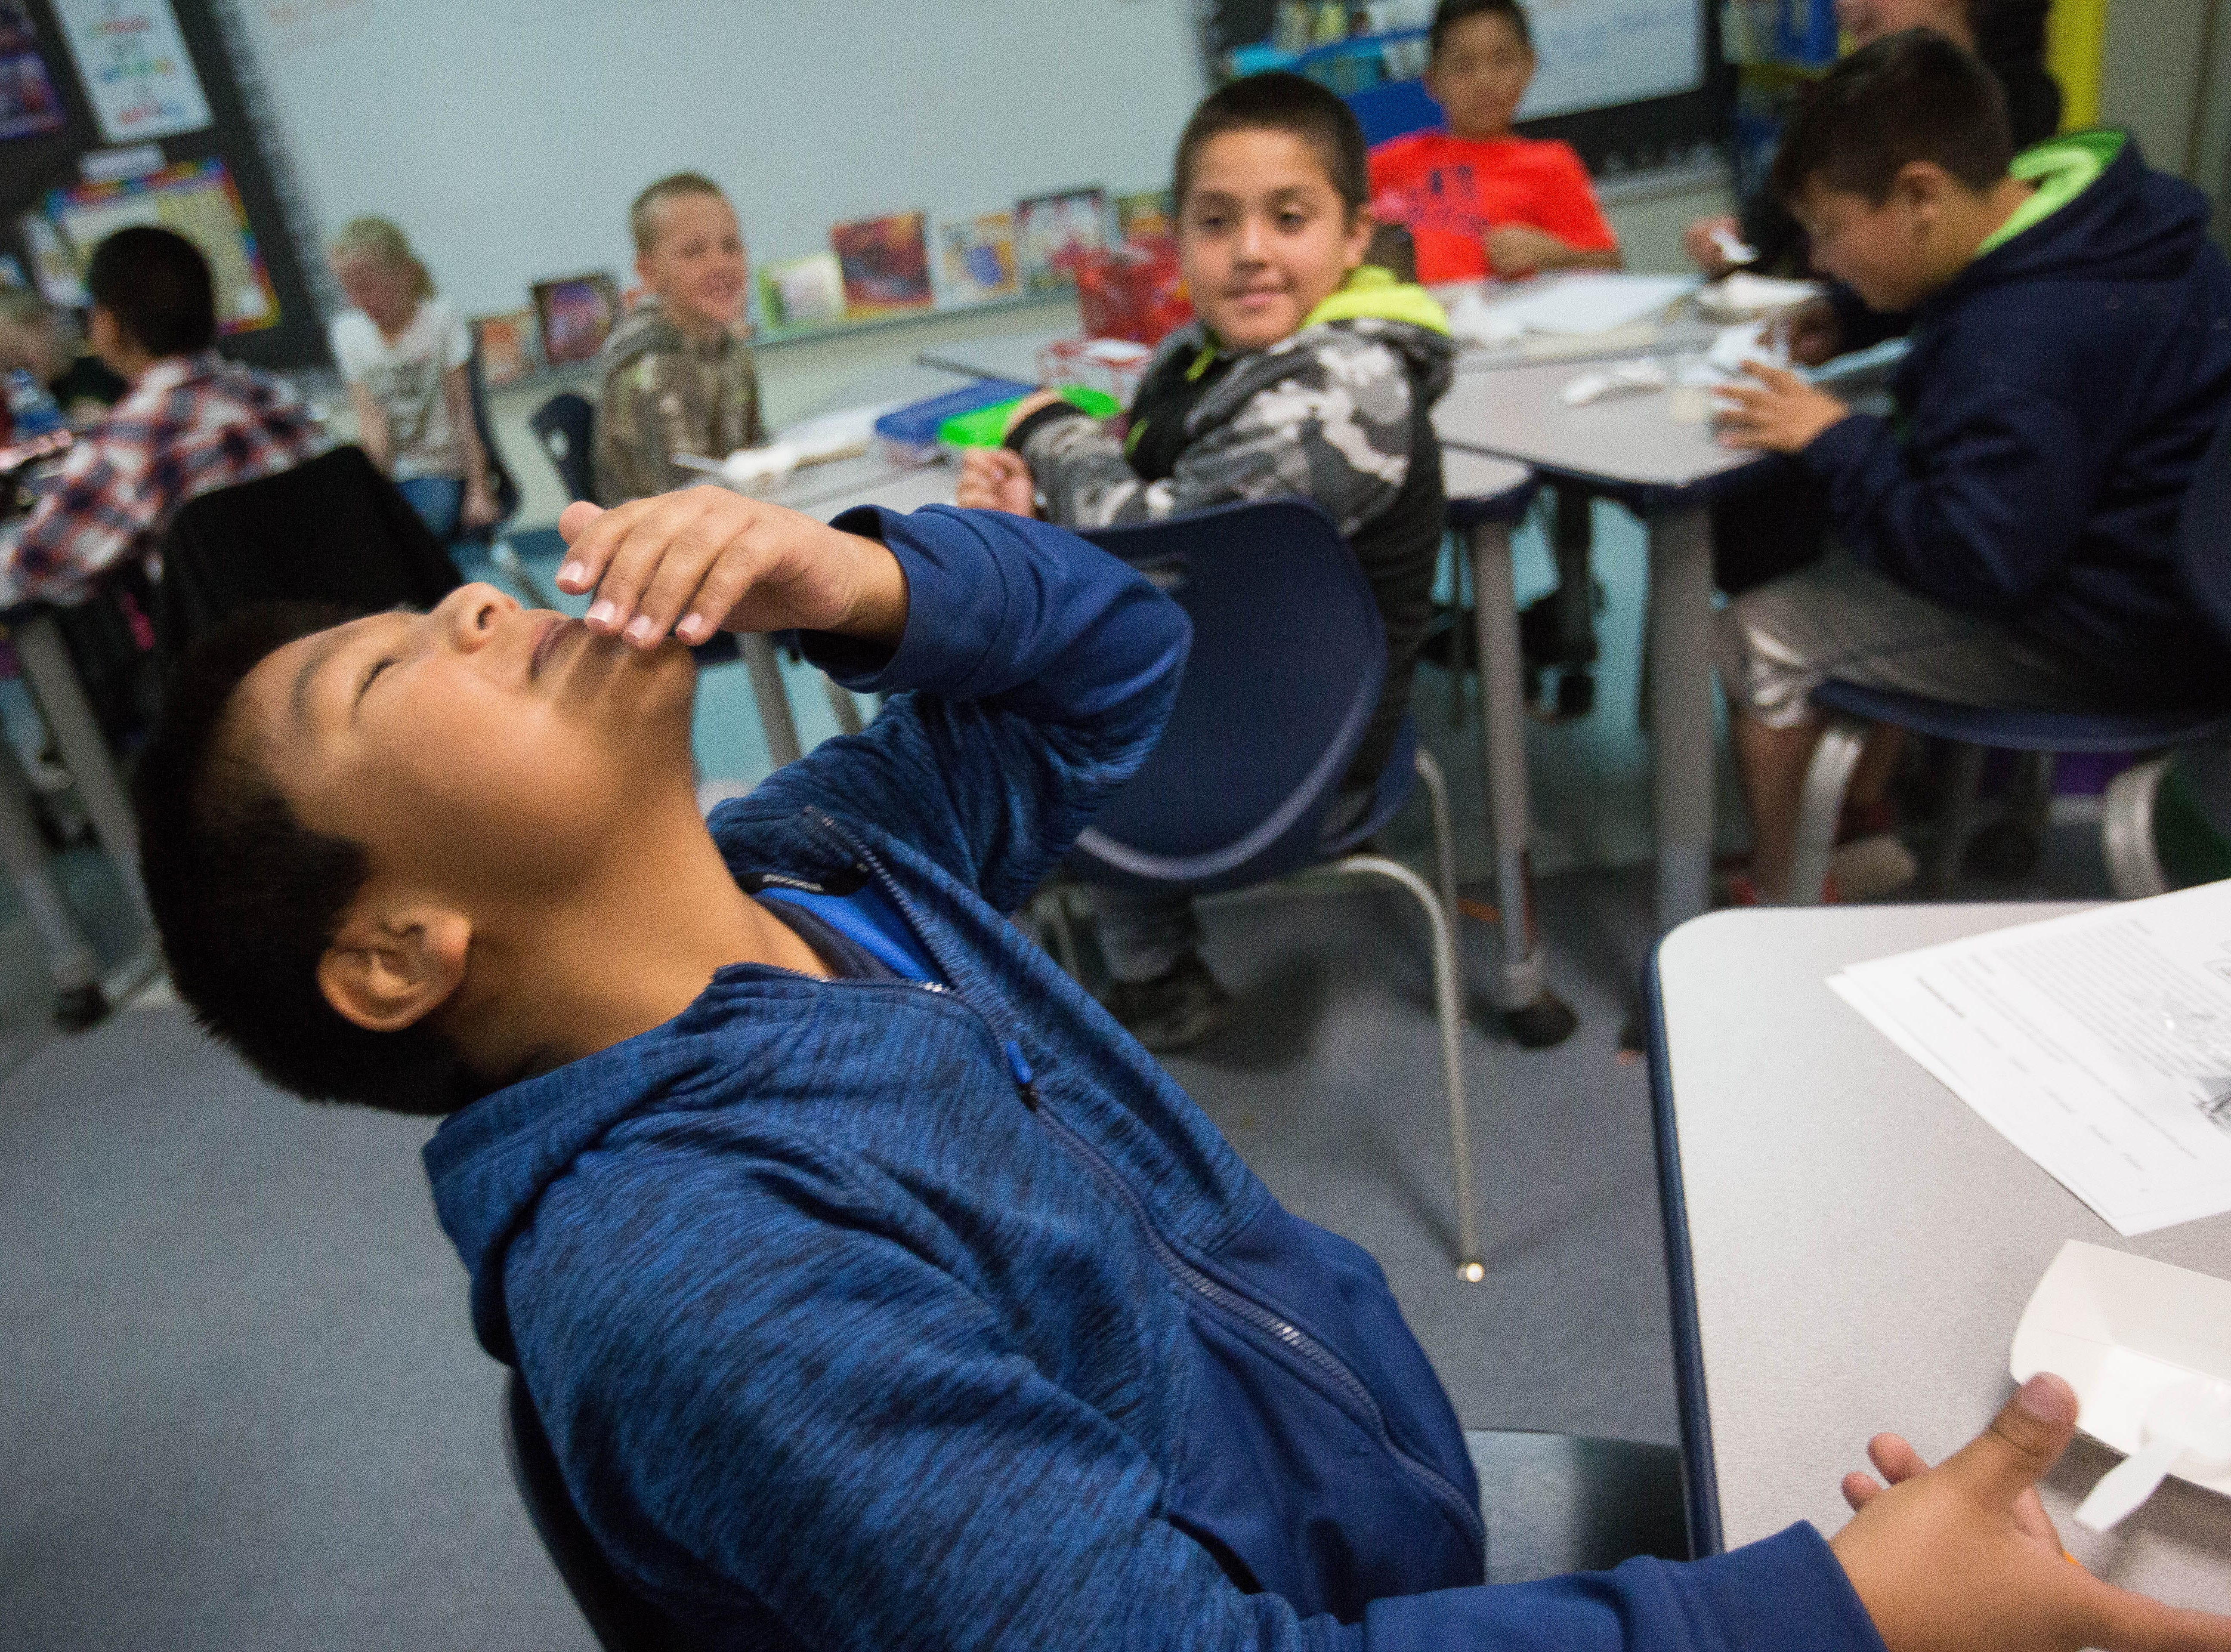 Rogelio Torres, 9, reacts to the taste of lentils during a nutrition class in Ashley Cartwright's home room at East Picacho  Elementary School, Thursday, November 29, 2018.